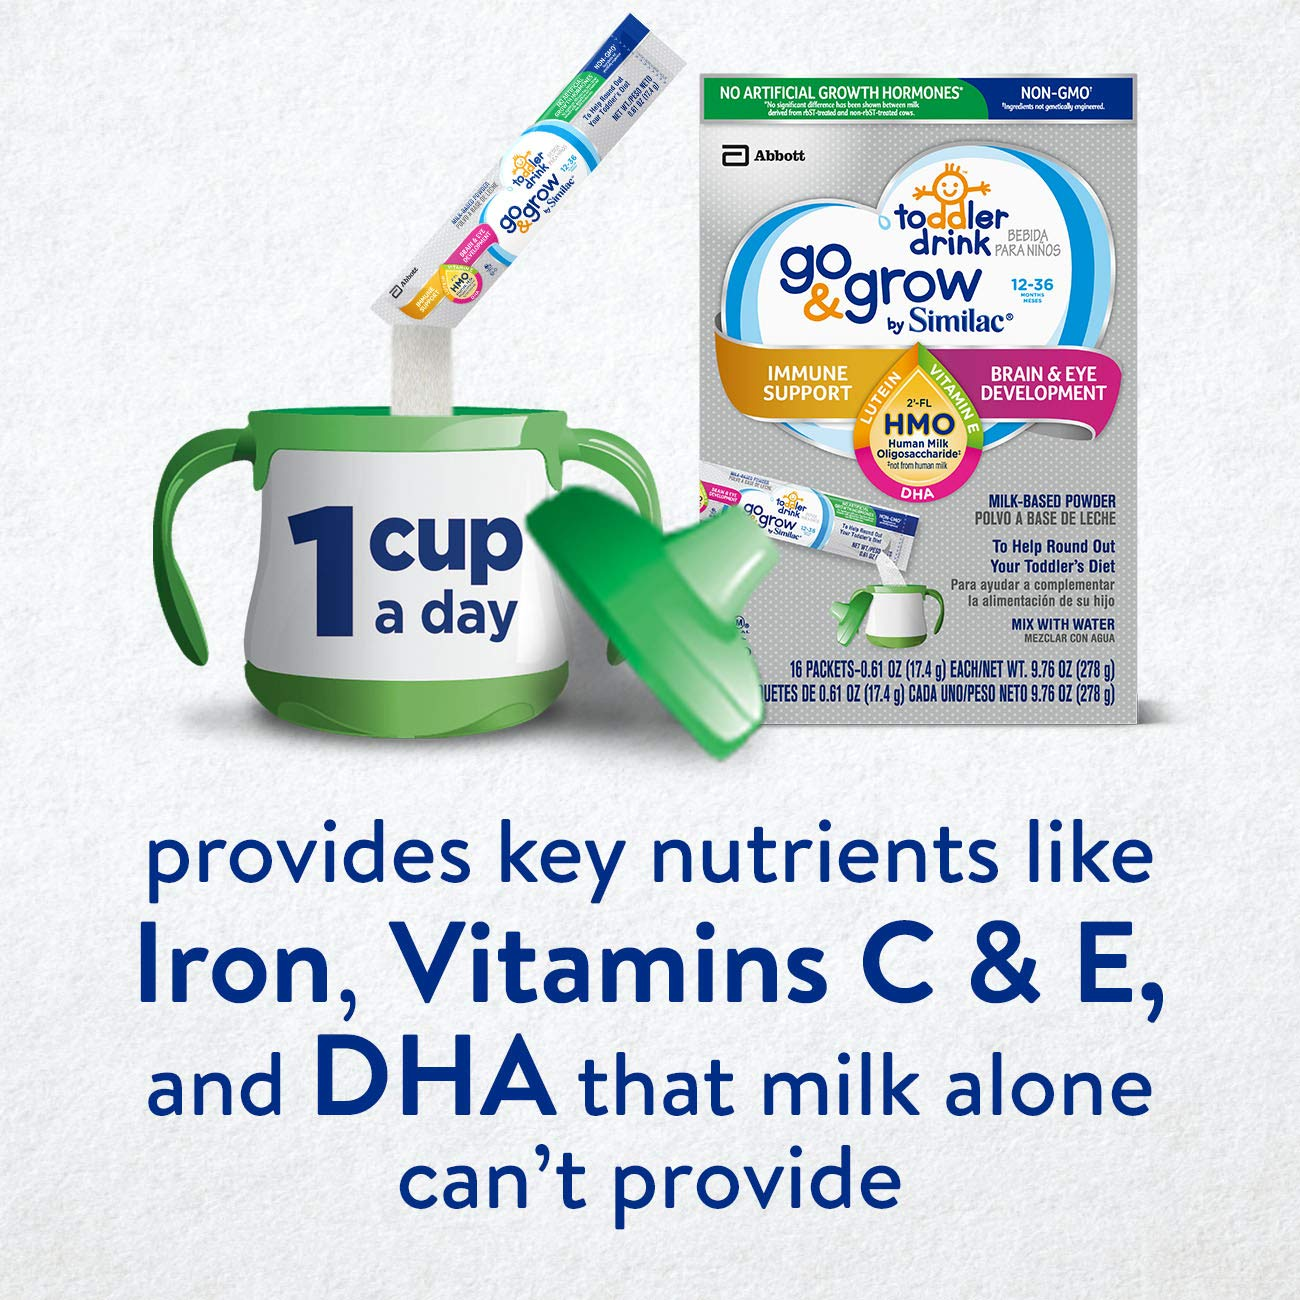 Go & Grow by Similac Non-GMO Toddler Milk-Based Drink with 2'-FL HMO for Immune Support, Powder Stick Packs, 17.4 g, 64 Count by Similac Go & Grow Milk (Image #5)